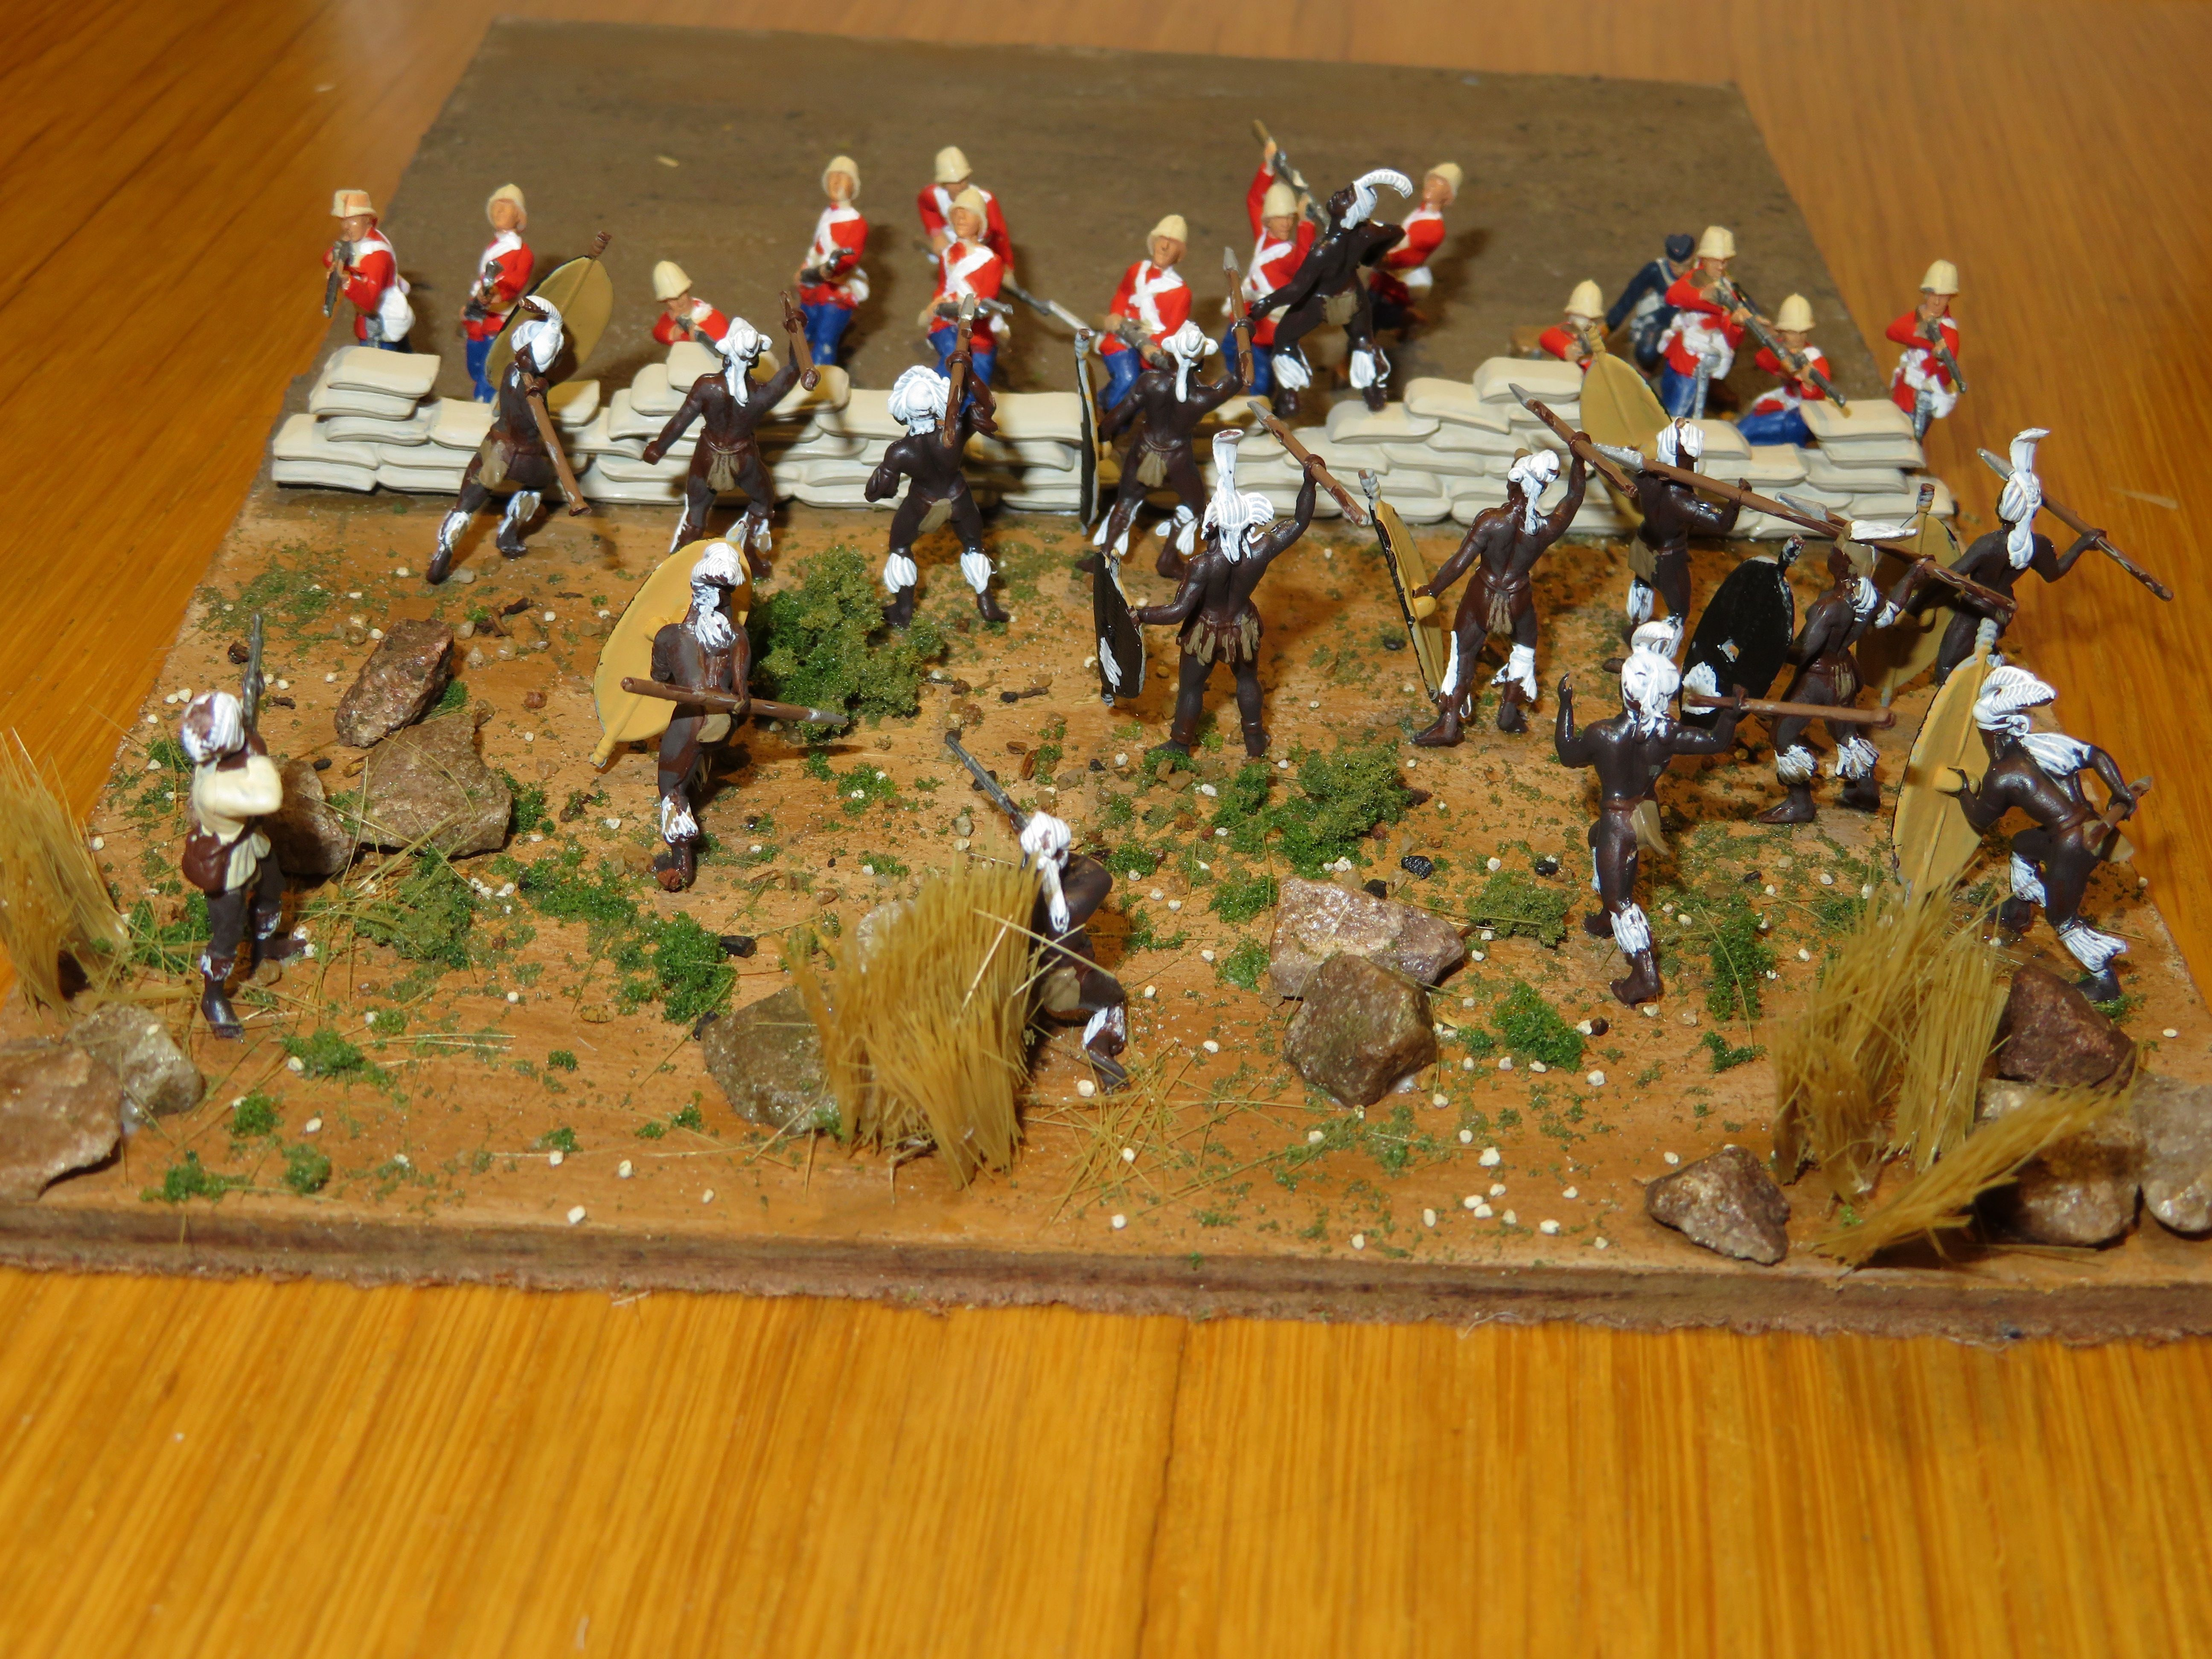 Lego PIRATES BRITISH ANGLO-ZULU WAR Colonial Line Infantry Soldiers MINIFIGS